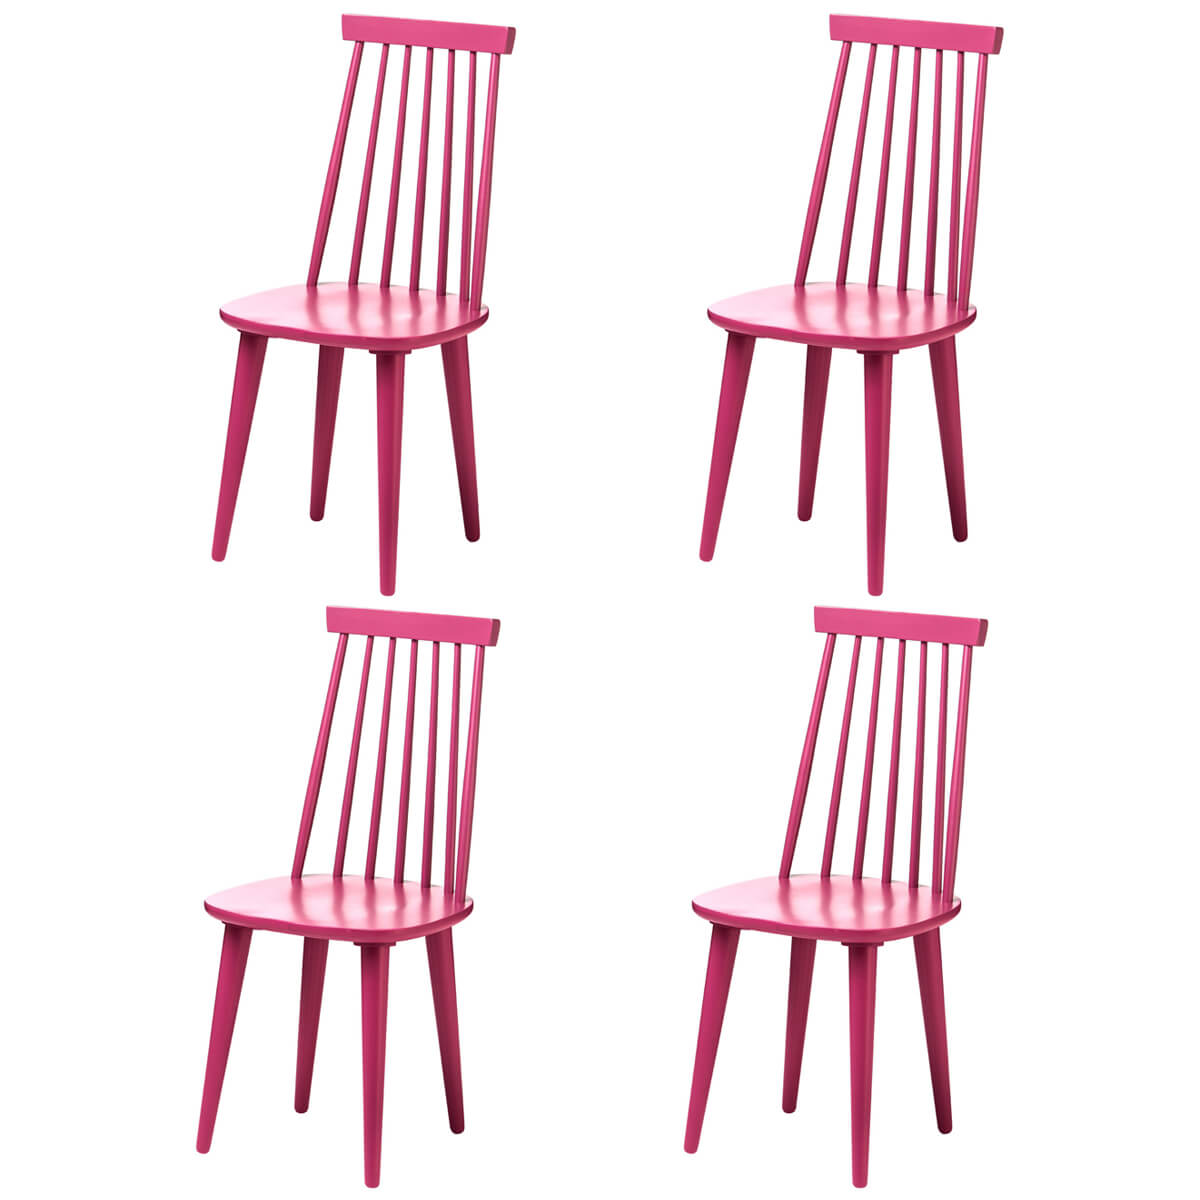 Vermont Herning Multi Colour Dining Chairs Raspberry Pink (Set of 4)